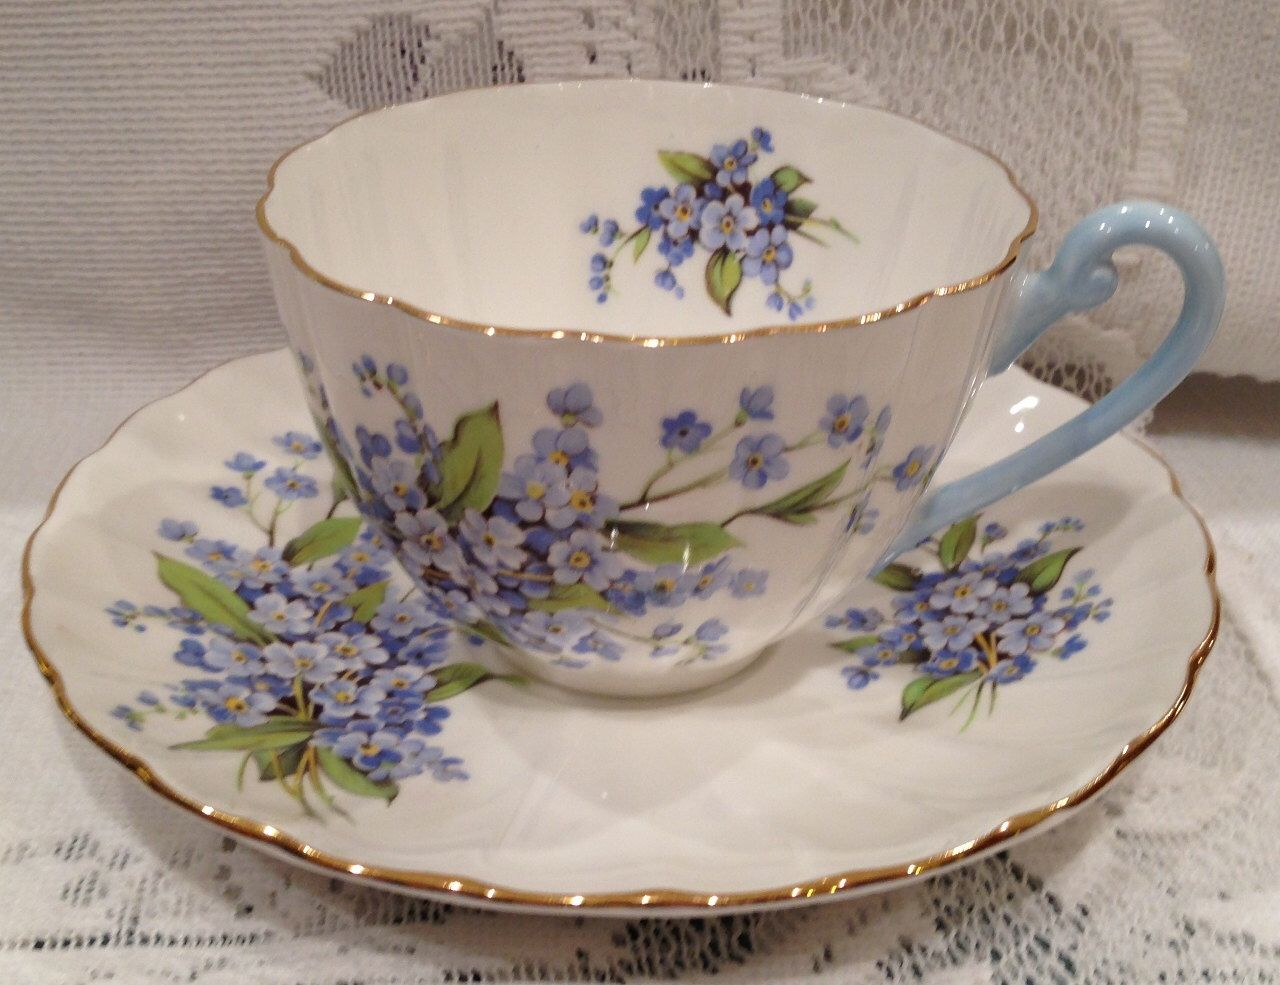 Vintage. English SHELLEY Fine Bone China Tea Cup & Saucer by CupsAndRoses on Etsy https://i0.wp.com/www.etsy.com/listing/2341…   Tea cups. Bone china tea ...